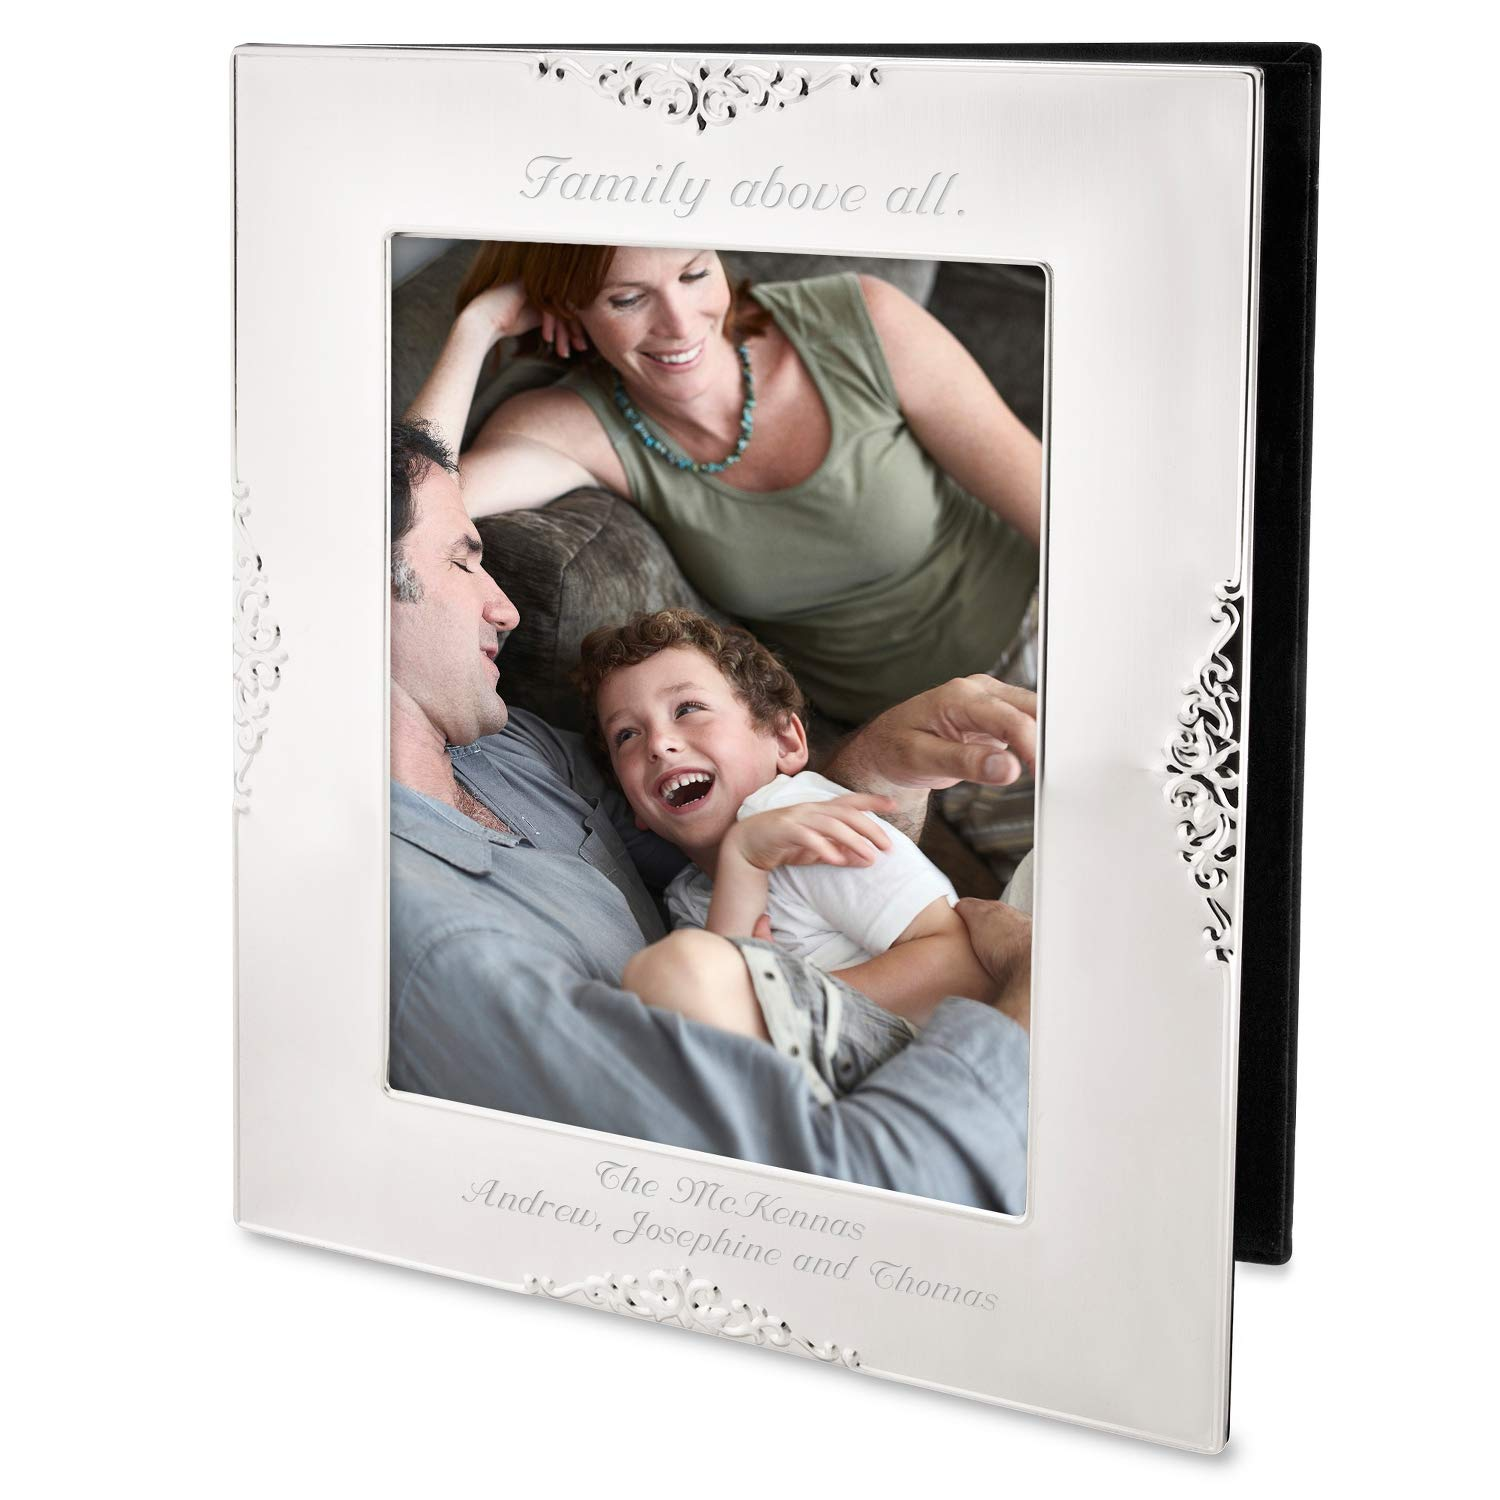 Things Remembered Personalized Heirloom Silver Picture Album with Engraving Included